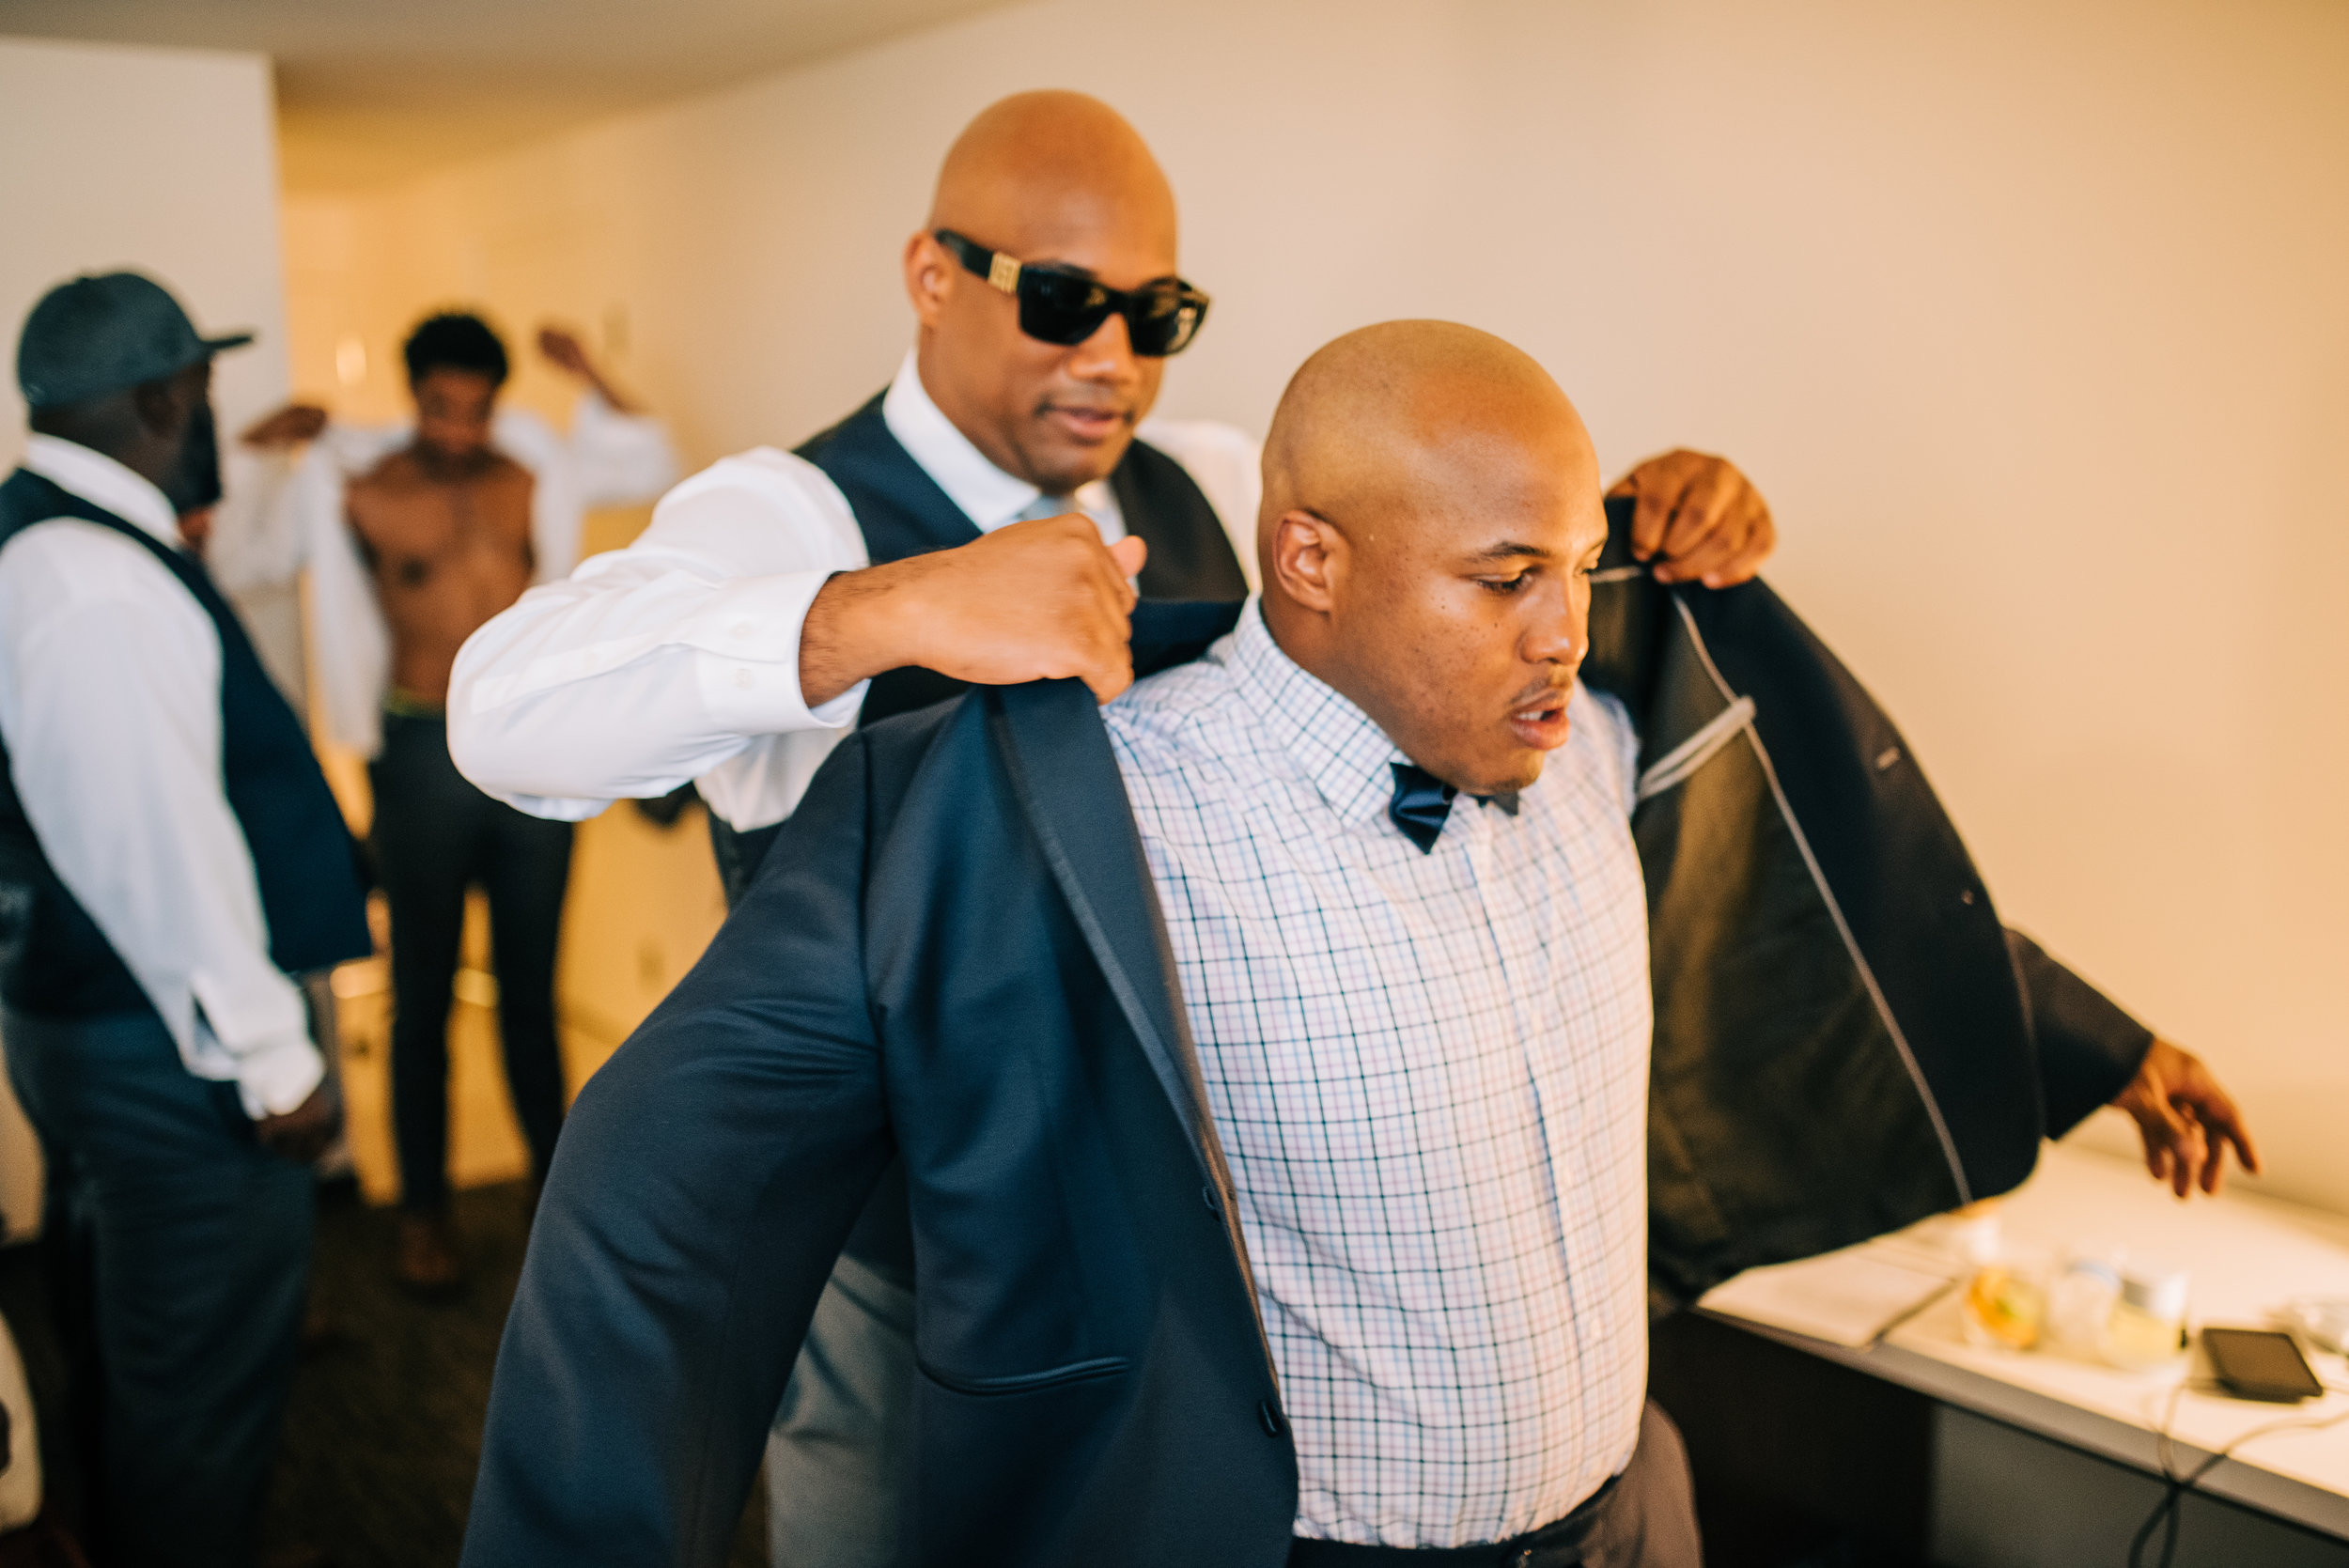 8 groom suit jacket groomsmen help groom groom getting dressed Life Design Events photos by Josh Snyder Photography.jpg